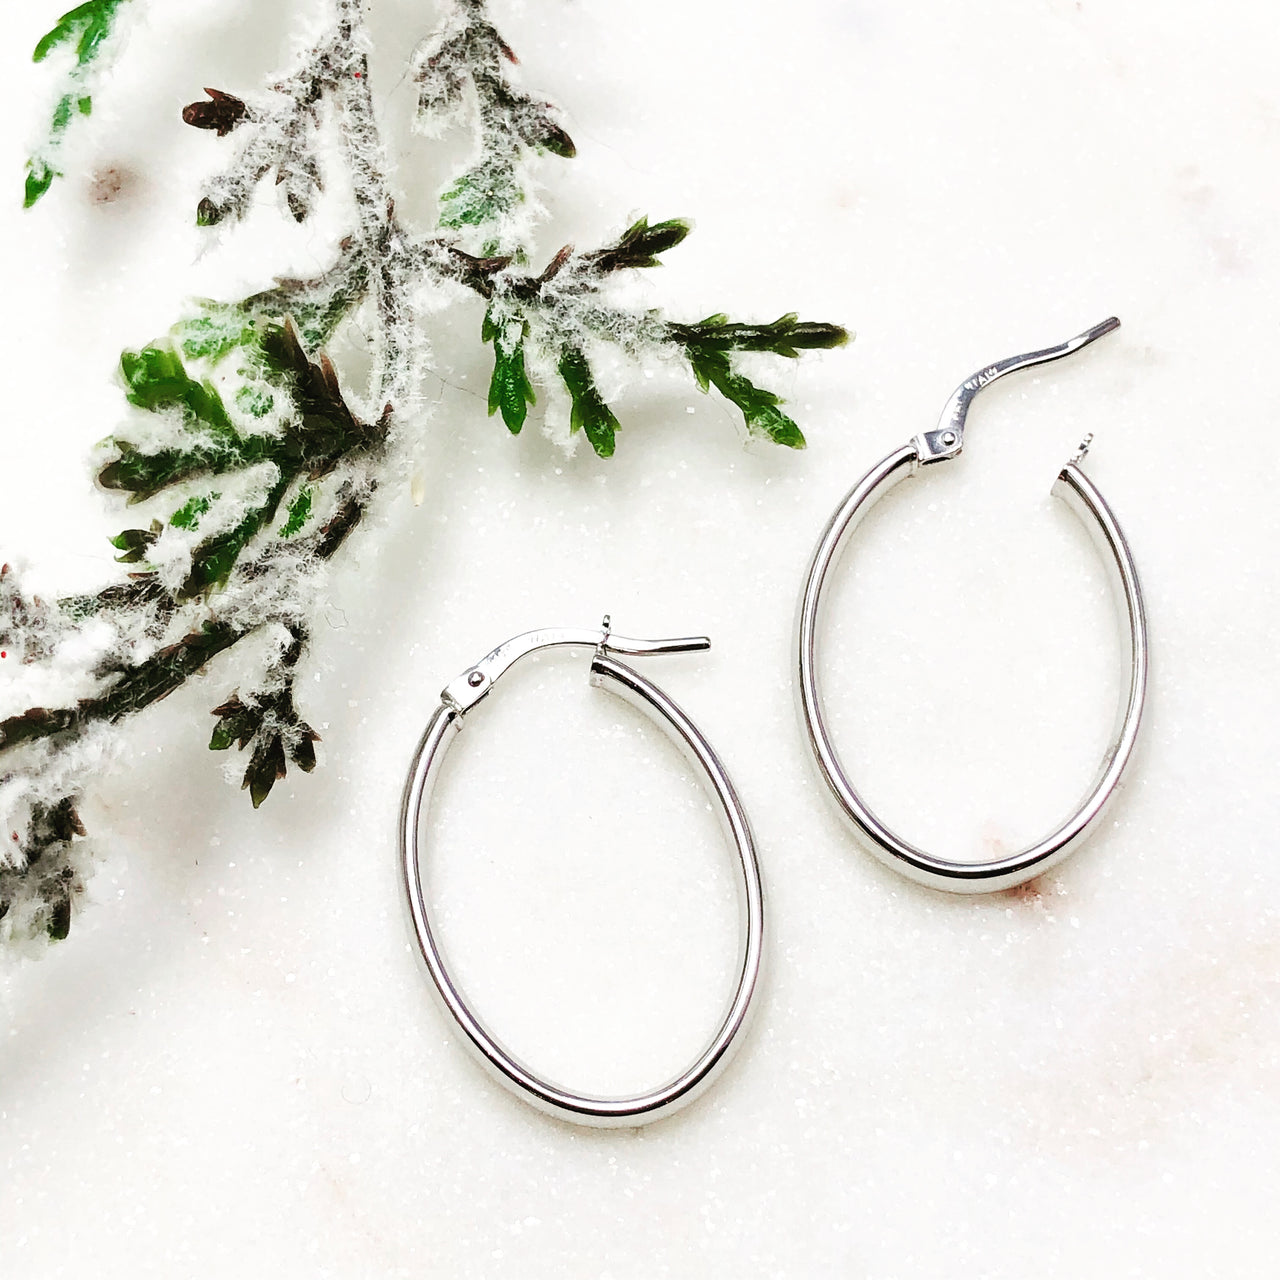 14k White Gold Earrings.